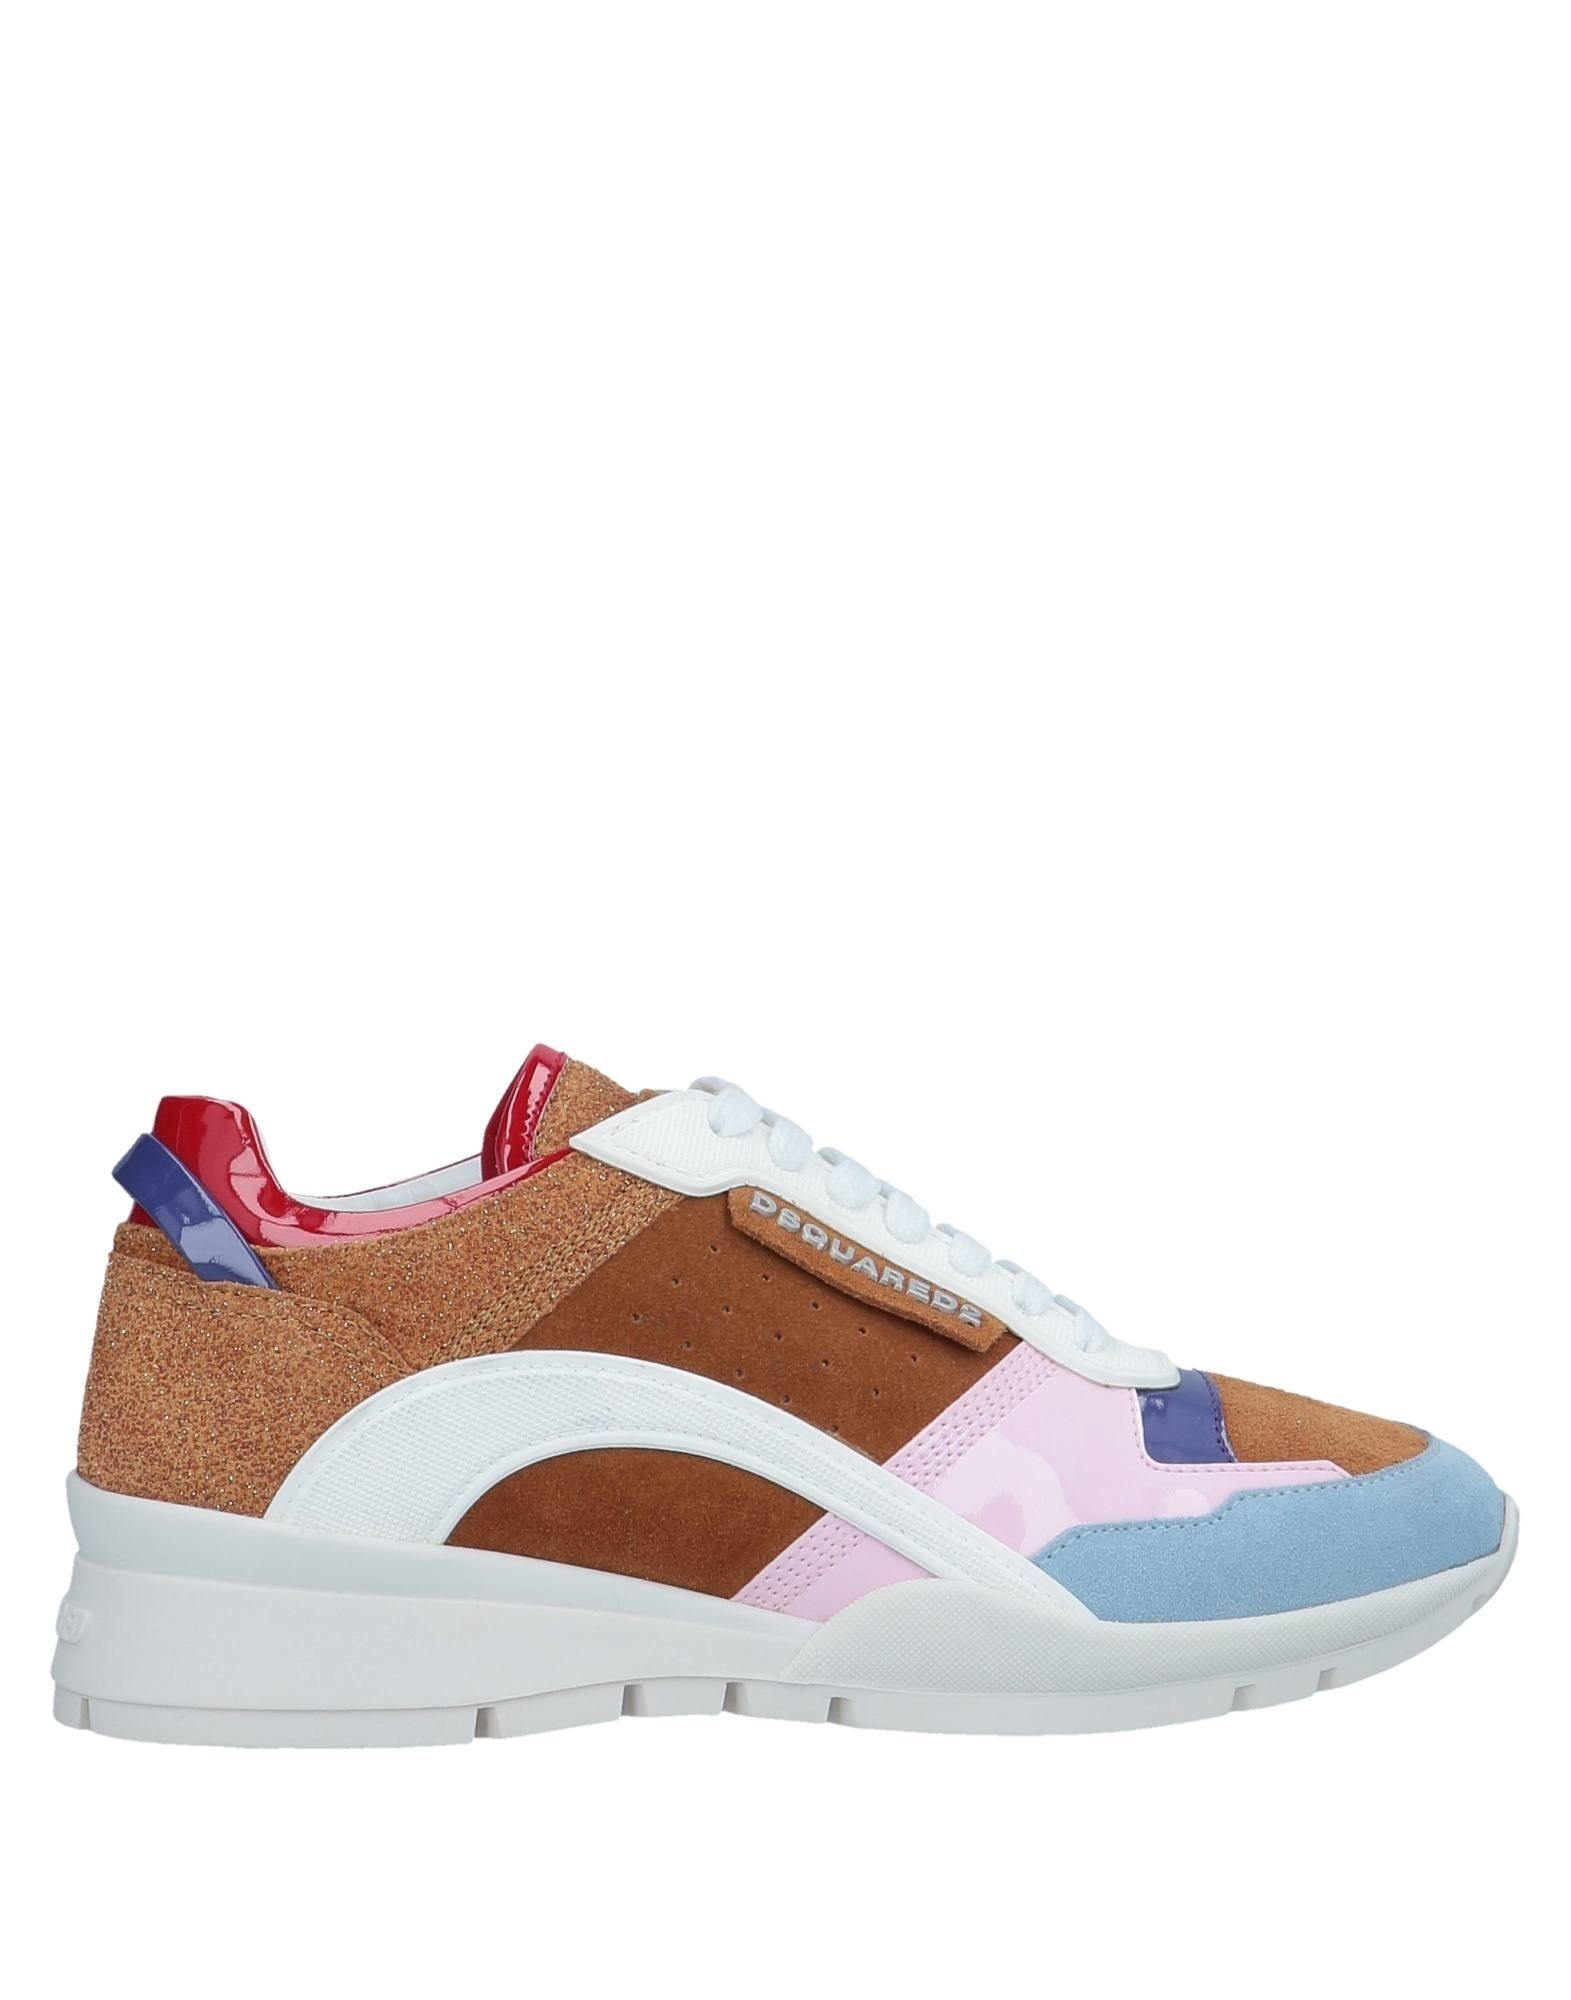 Dsquared2 Sneakers - Women Dsquared2 Sneakers - online on  Canada - Sneakers 11555850NQ 25d810